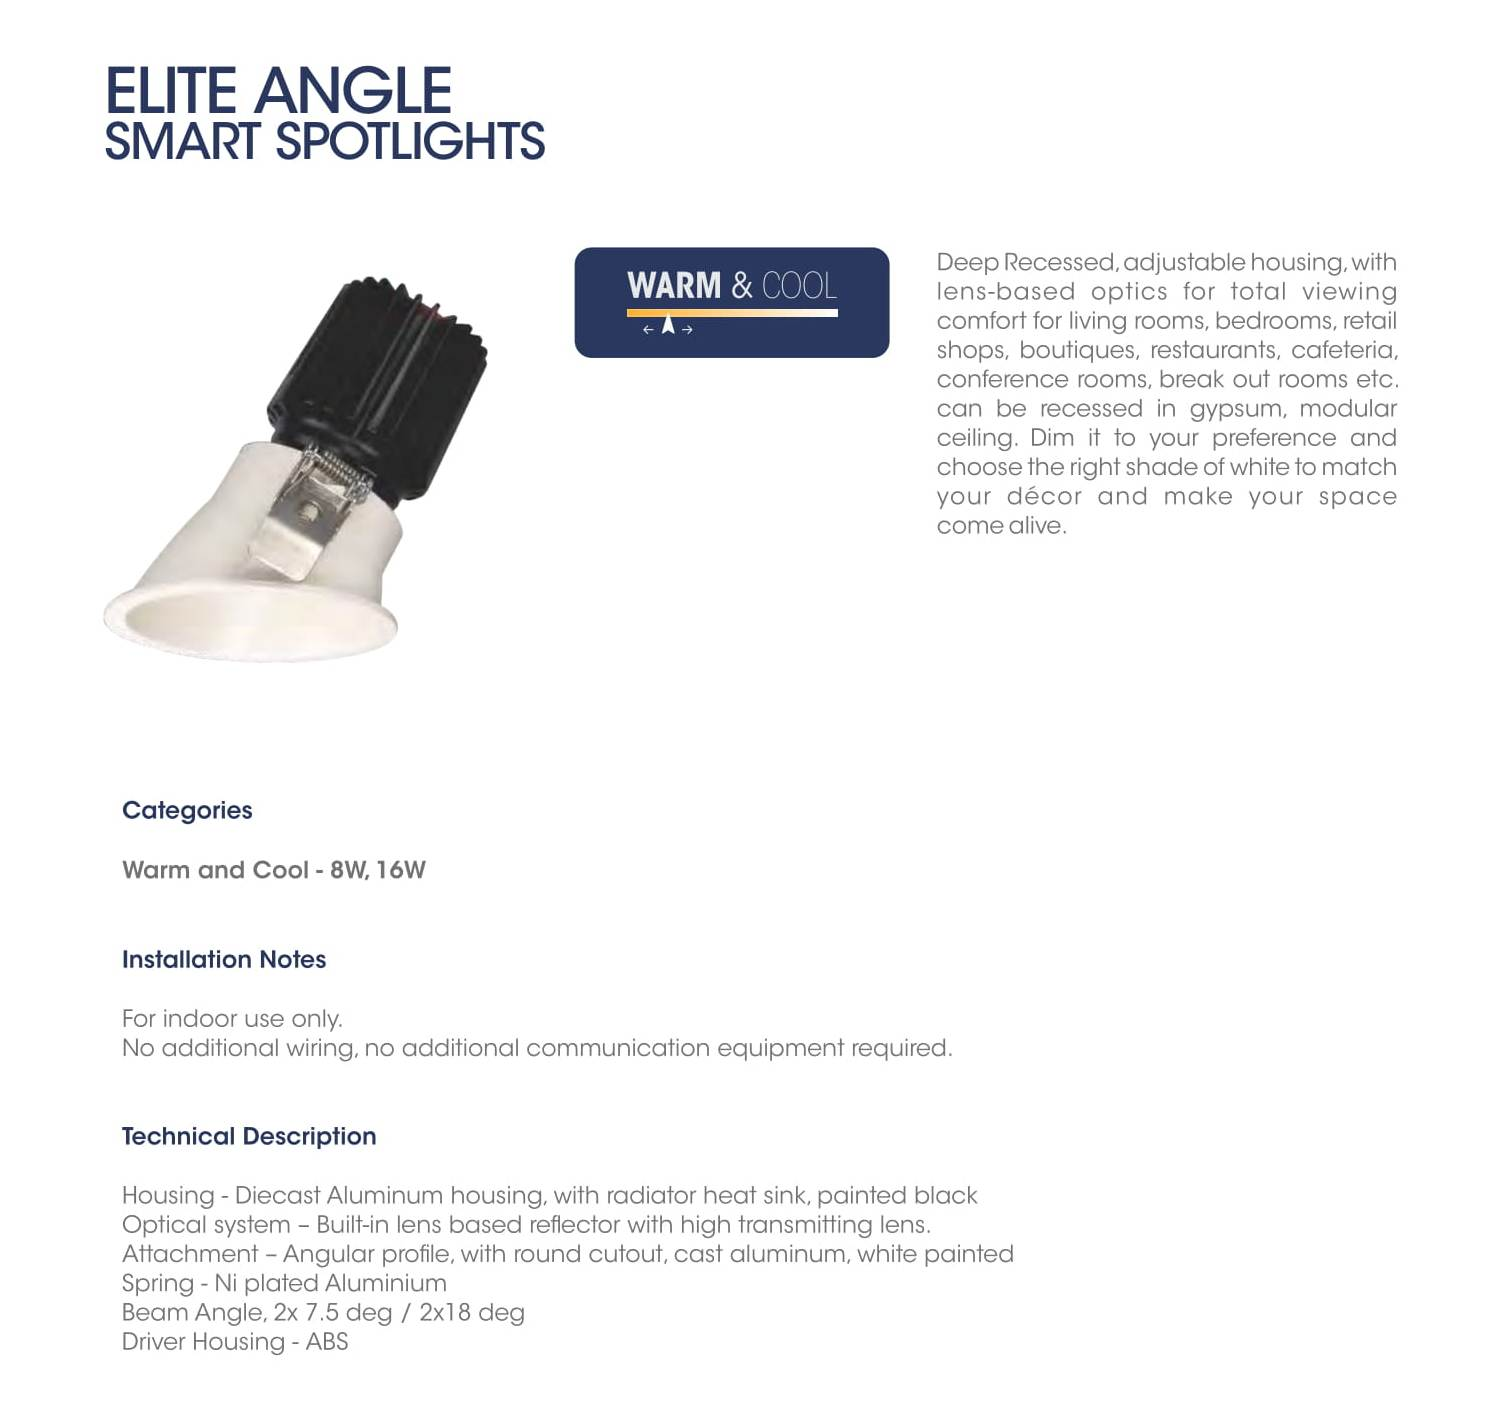 Elite Angle Smart Spotlights